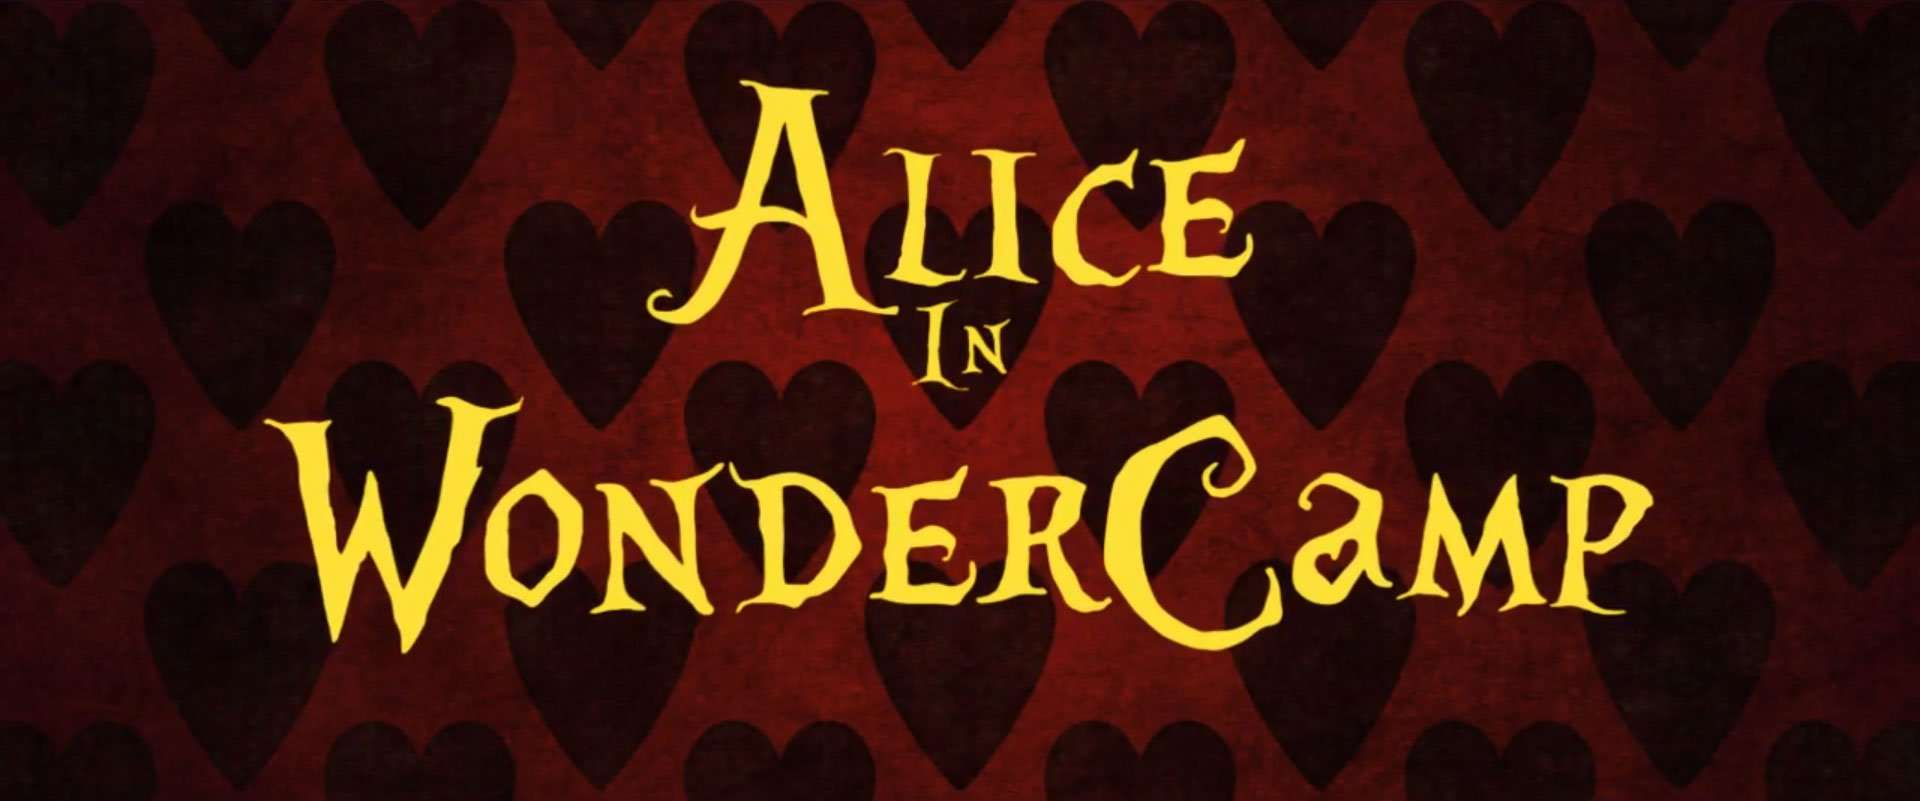 Alice-in-Wonderland-Trailer-Remake-Altercut-Camposcuola-video-editing-video-maker-effetti-speciali